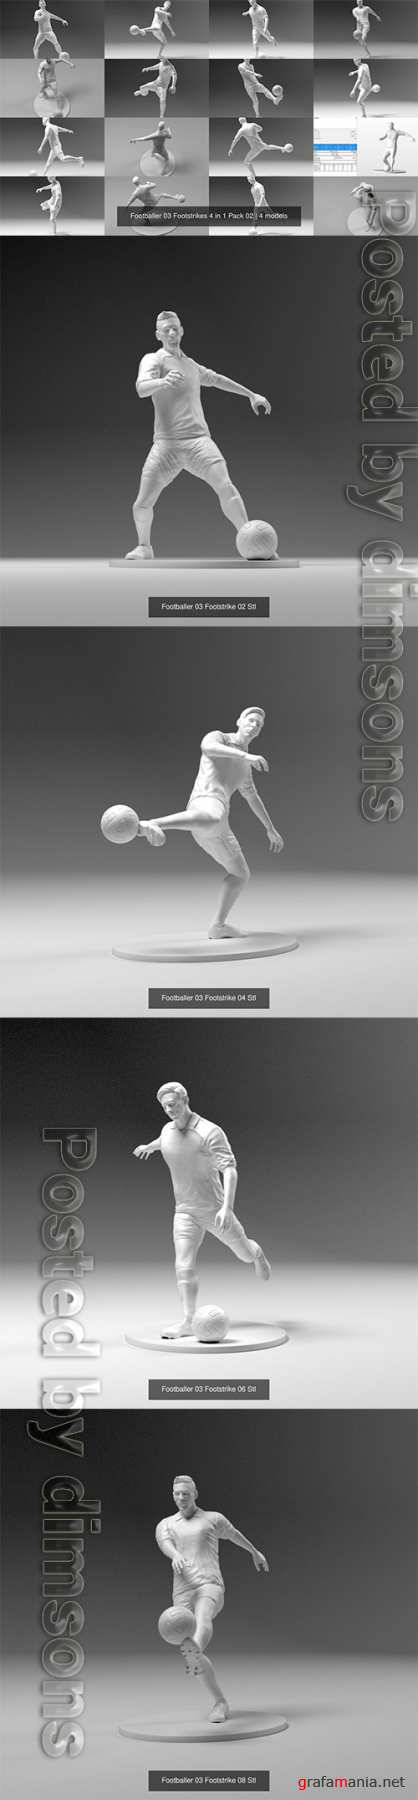 Footballer 03 Footstrikes 4 in 1 Pack 02 3D Model Collection